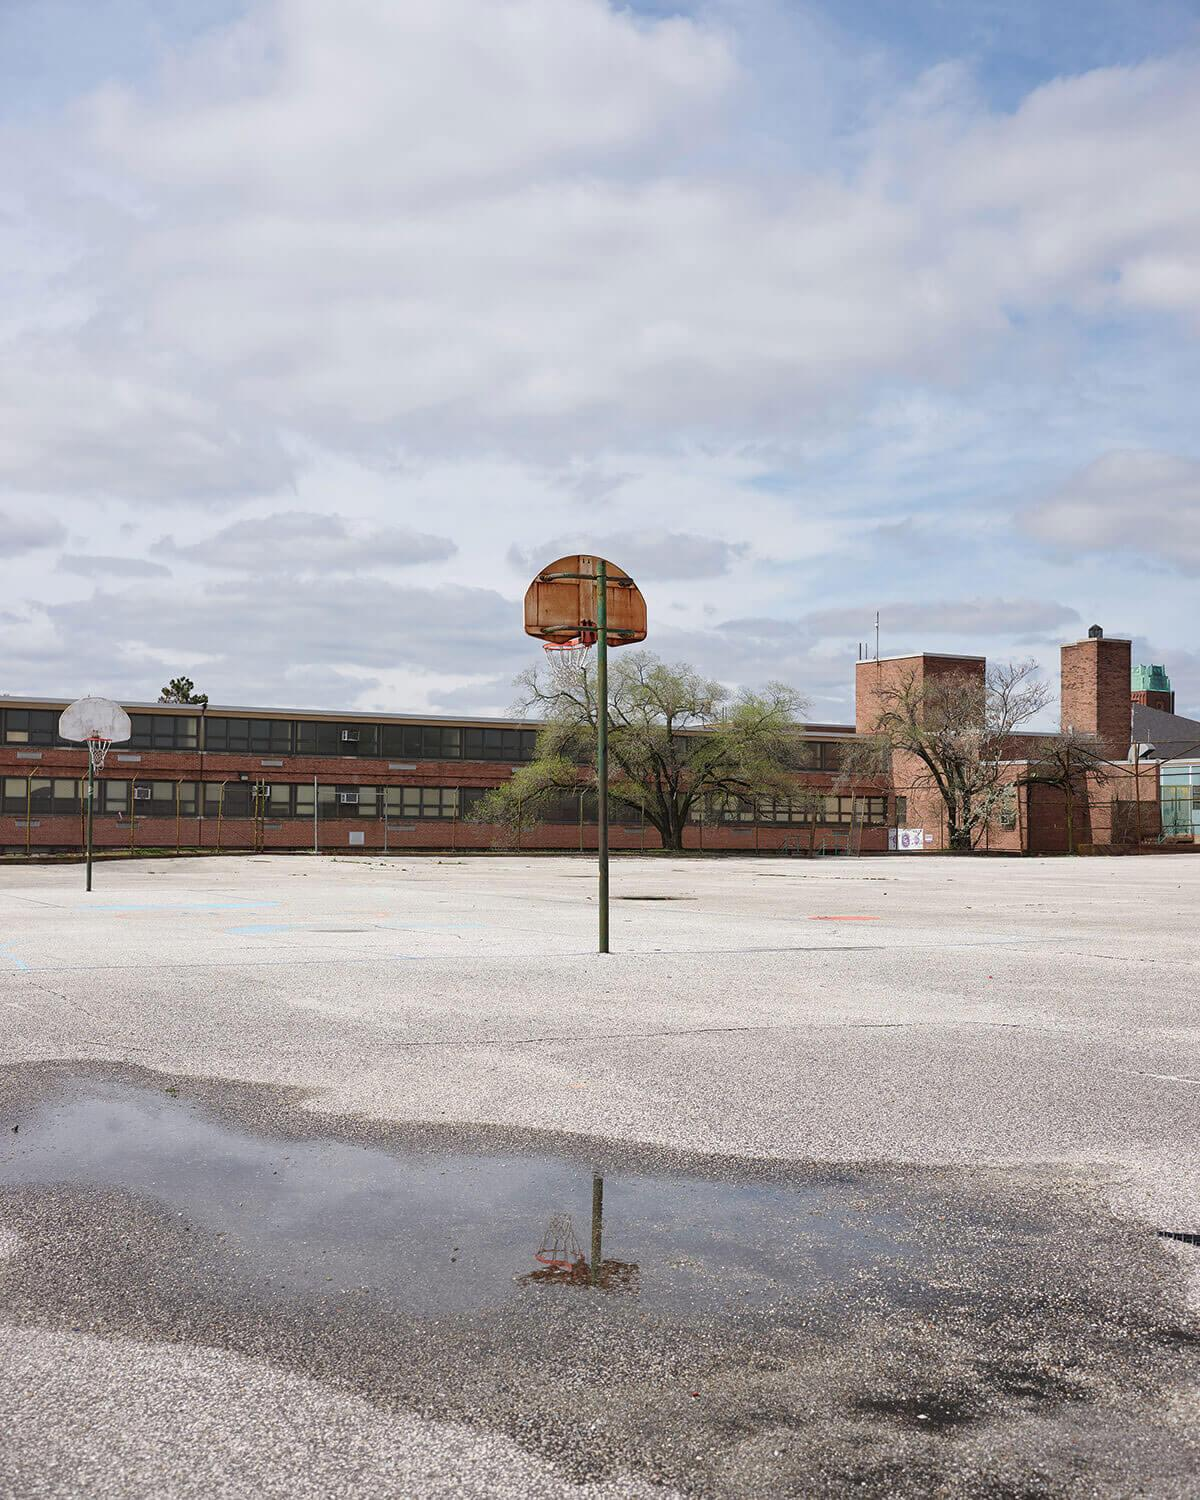 A picture of the empty school grounds at City Springs Elementary/ Middle School in East Baltimore.